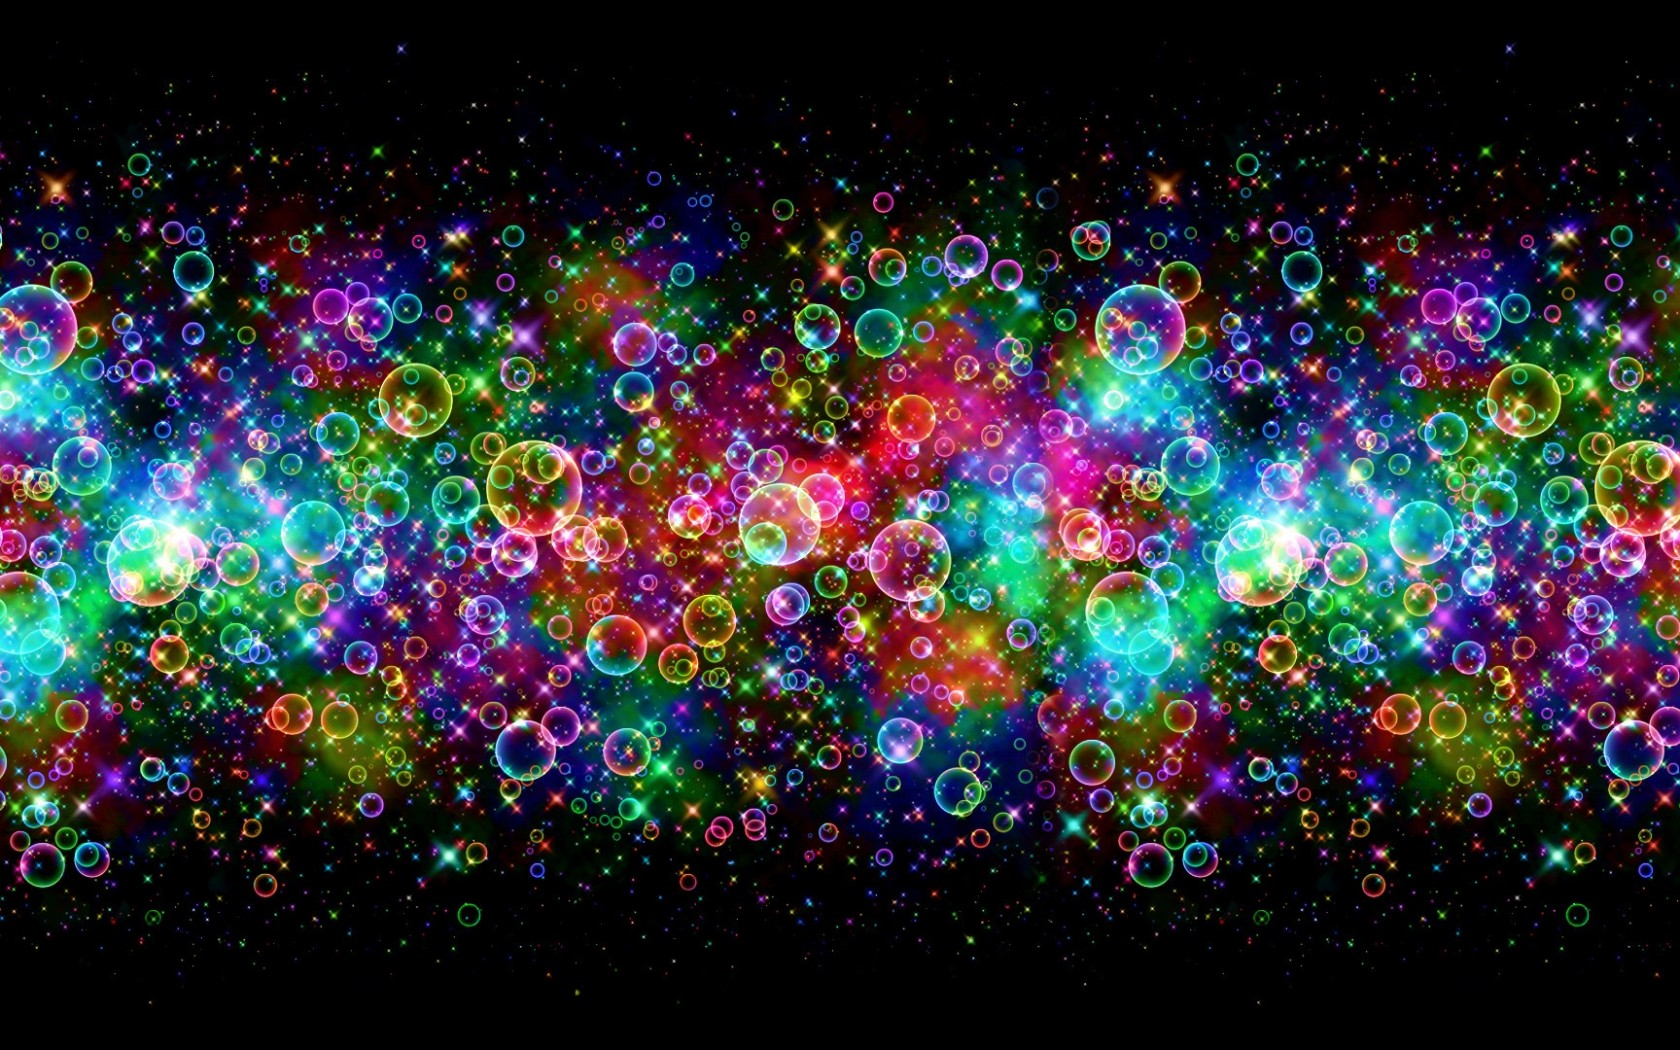 3d Bubbles Wallpaper: Colourful 3D Bubbles Wallpapers HD